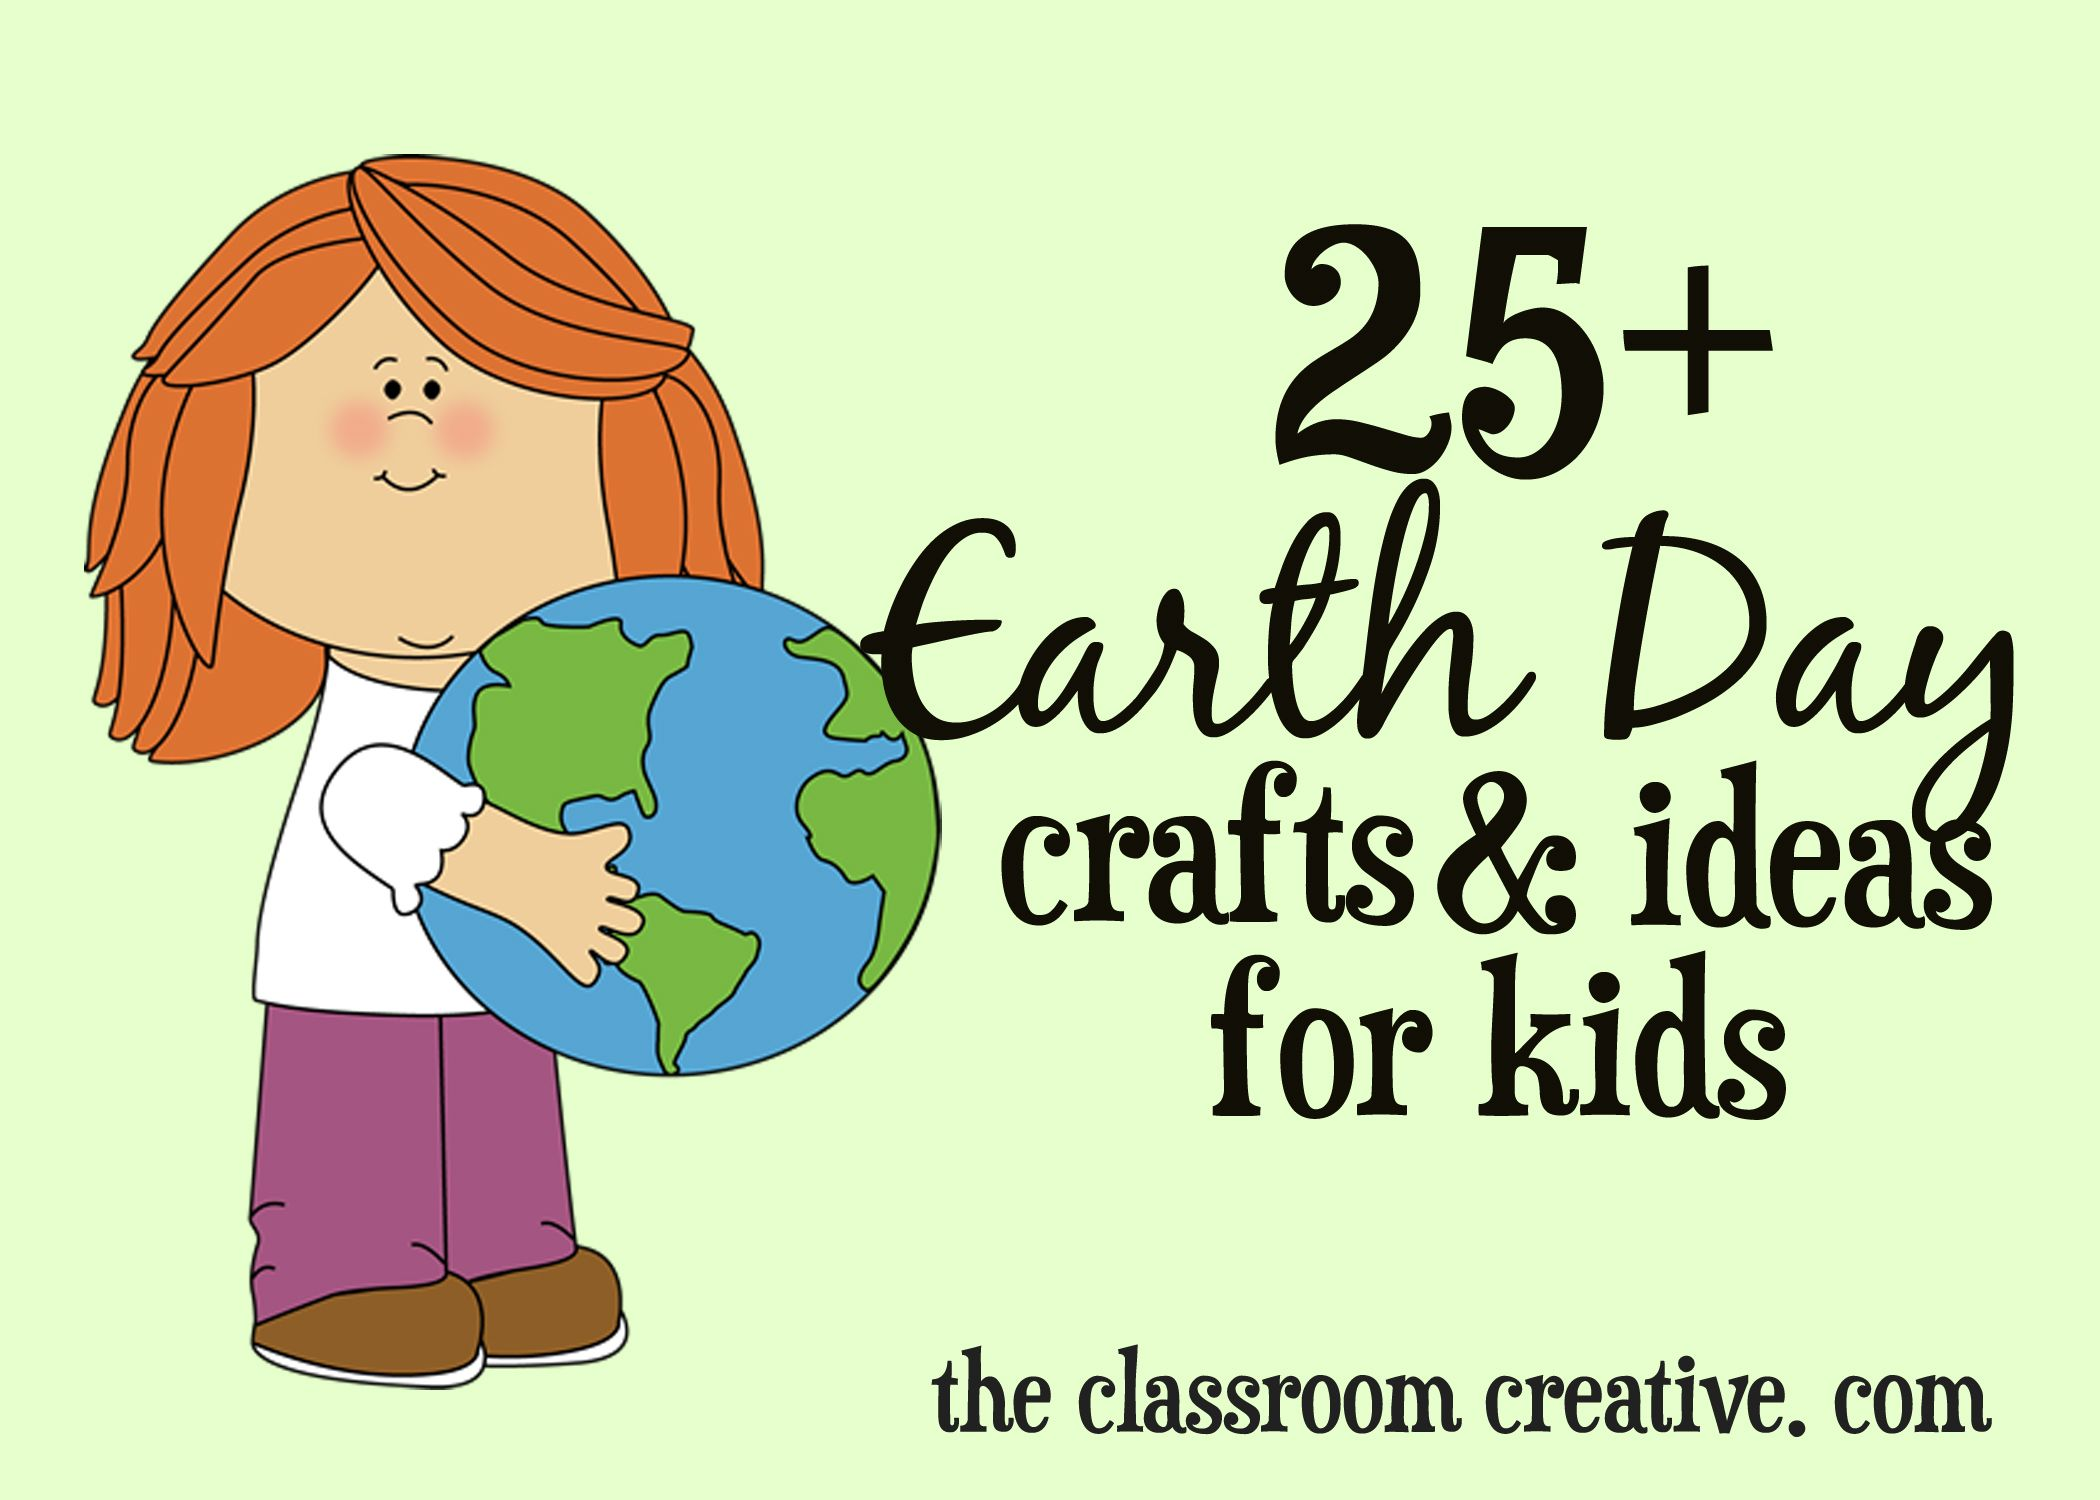 Earth Day Crafts And Ideas For Kids